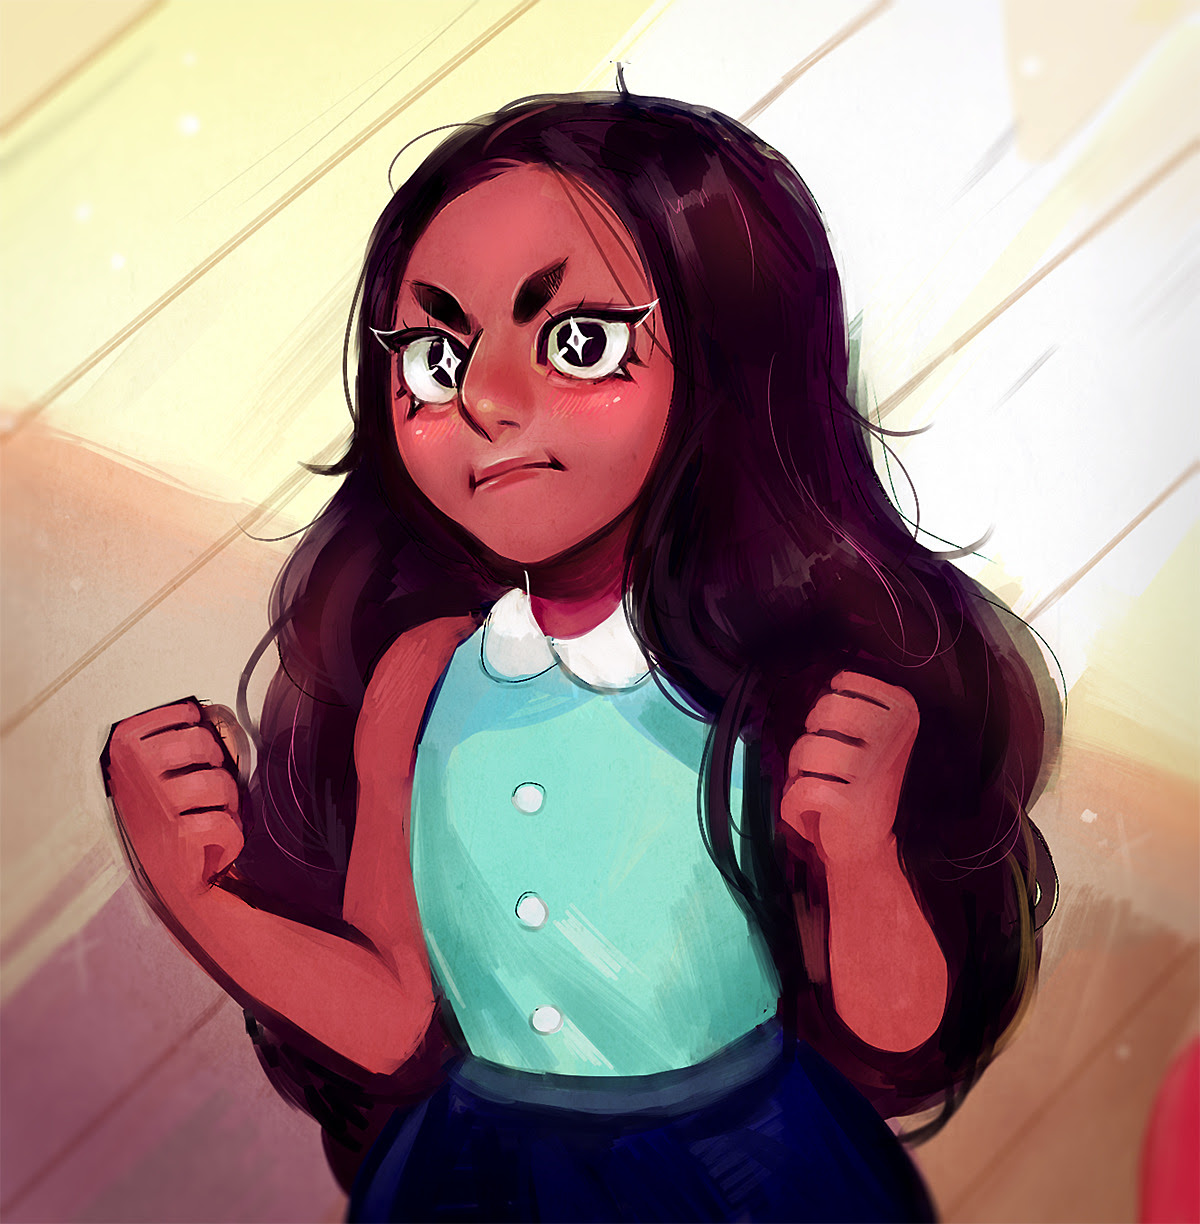 yo tbh this episode was an emotional rollercoaster and connie is super super qt i had to redraw this cap